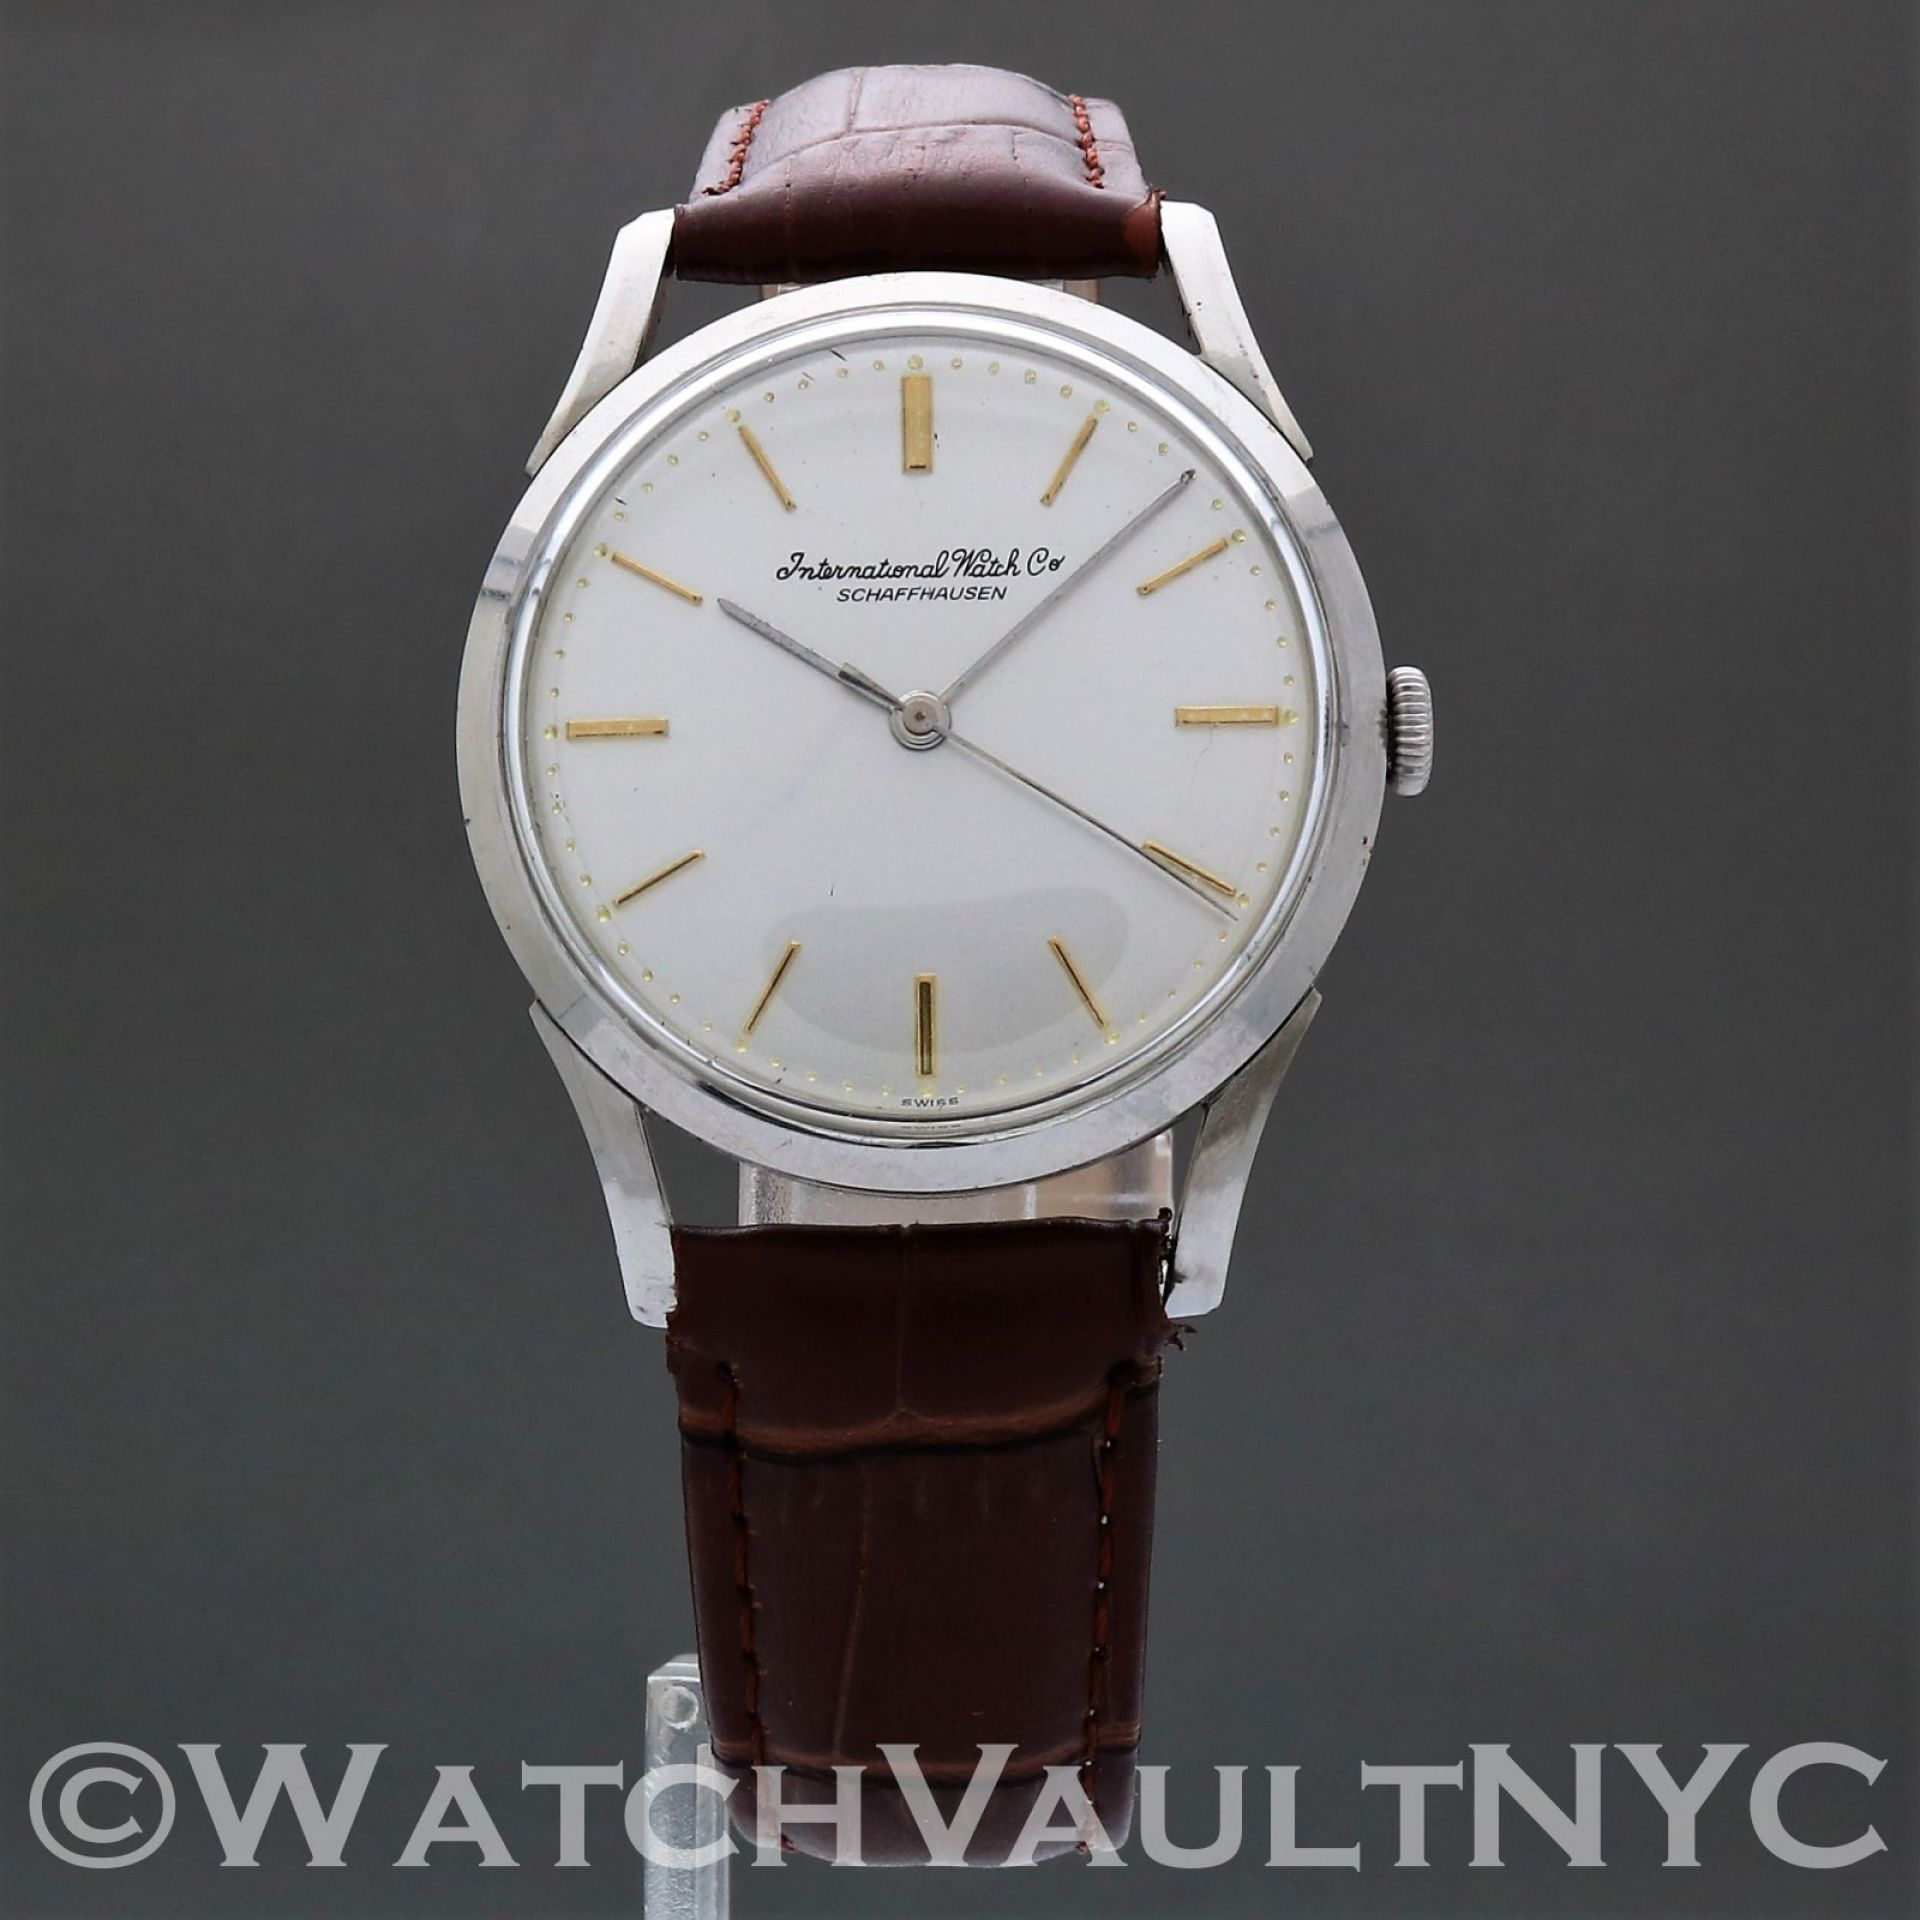 IWC Caliber 89 1950s Vintage 36mm Manual RJ205